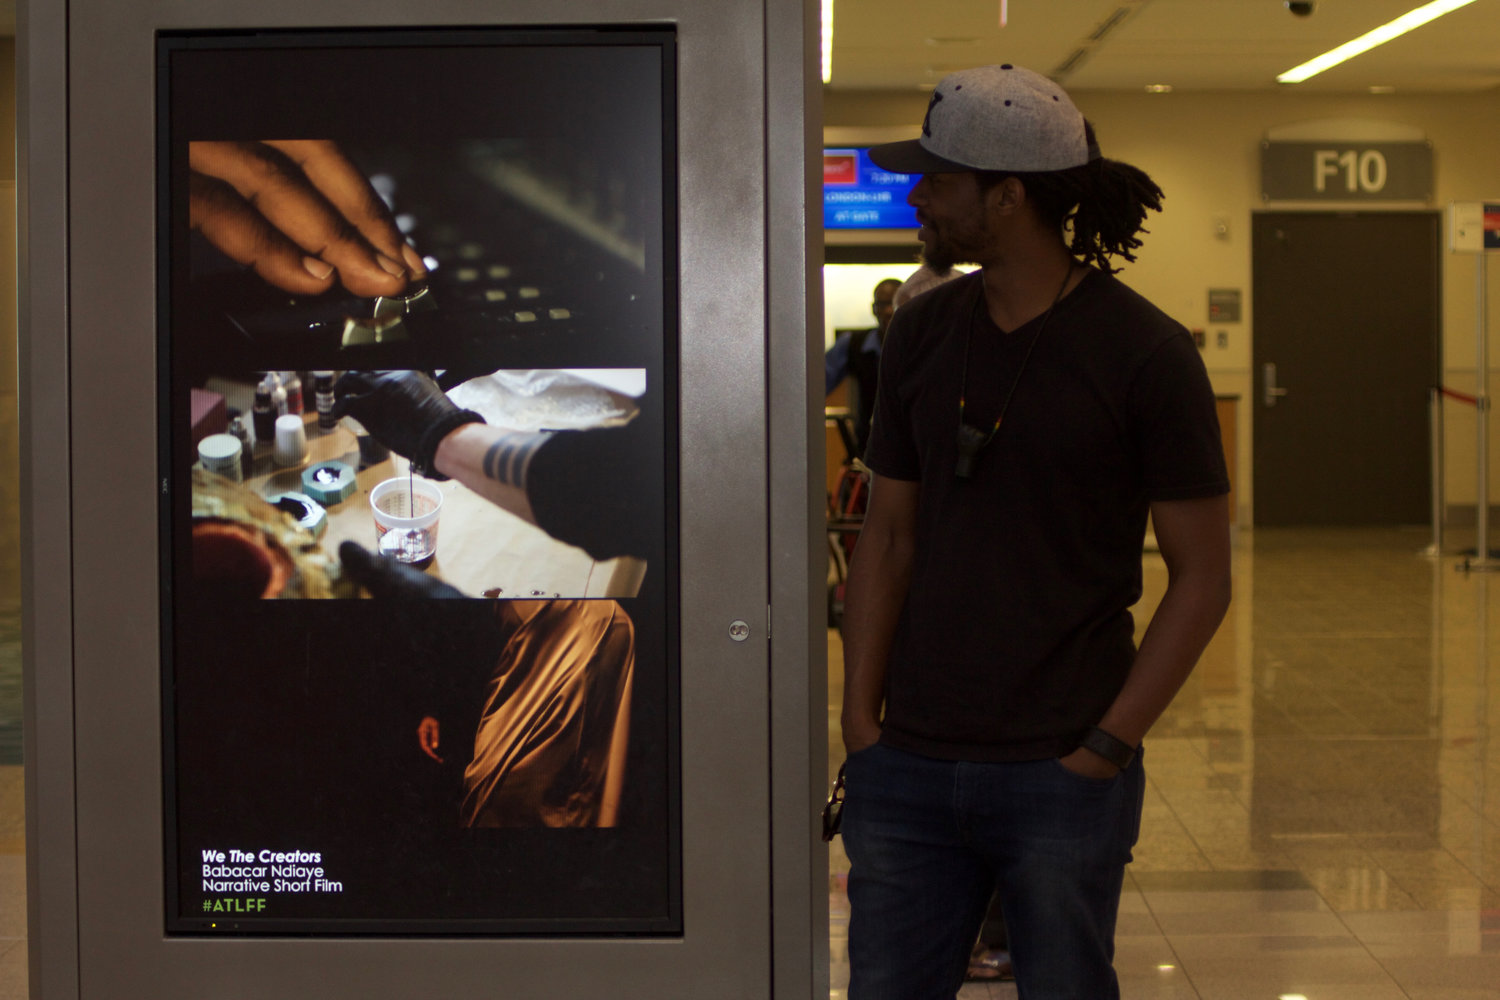 A formerly featured Airport short plays in the international terminal at atlanta's hartsfield - jackson airport.